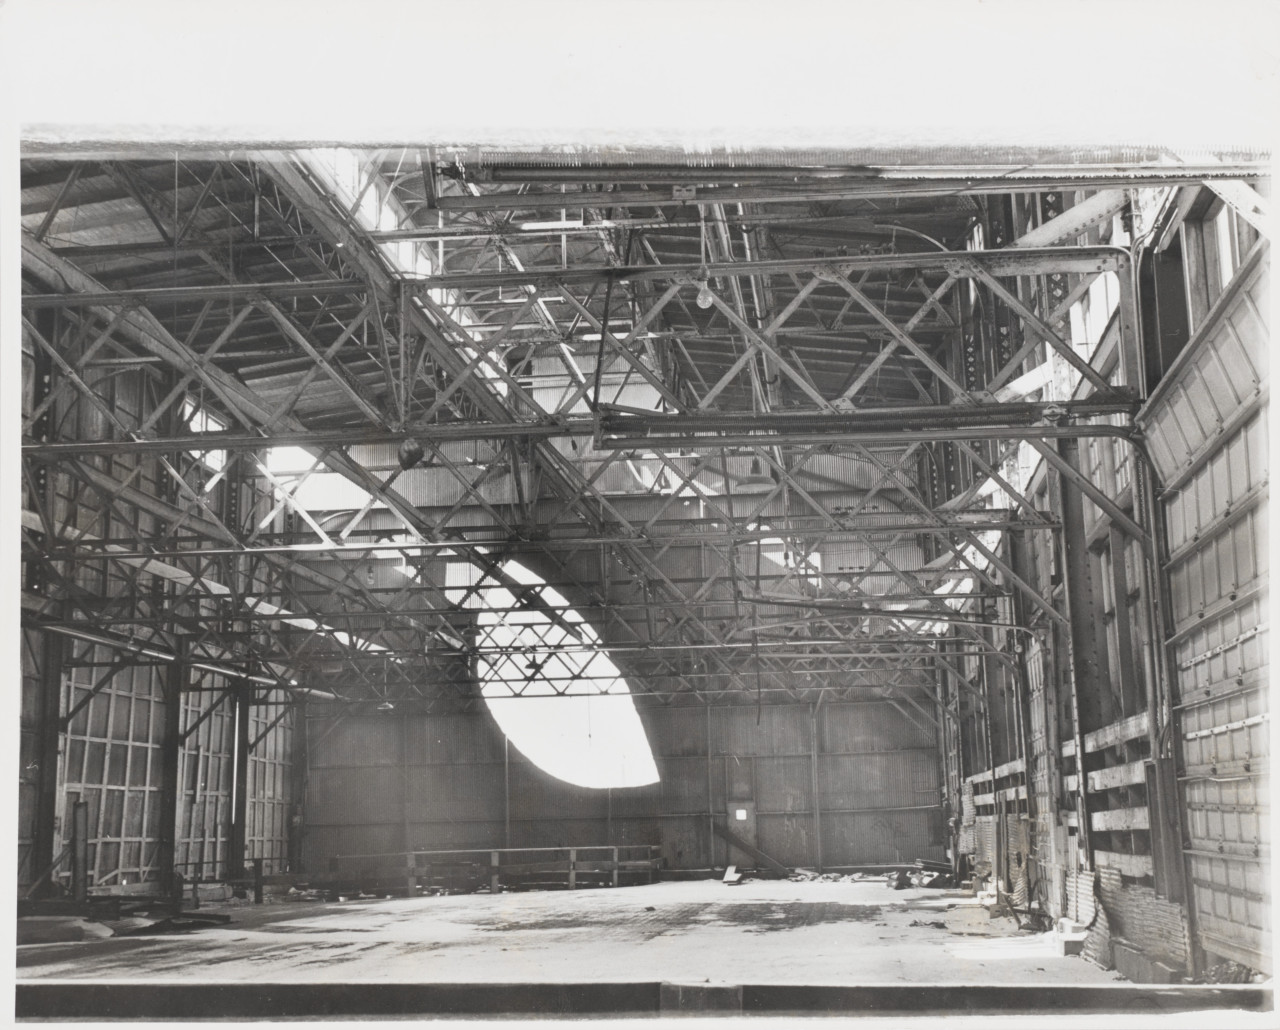 Photo of a warehouse interior with a sculptural cut in a wall, part of Around Day's End: Downtown New York